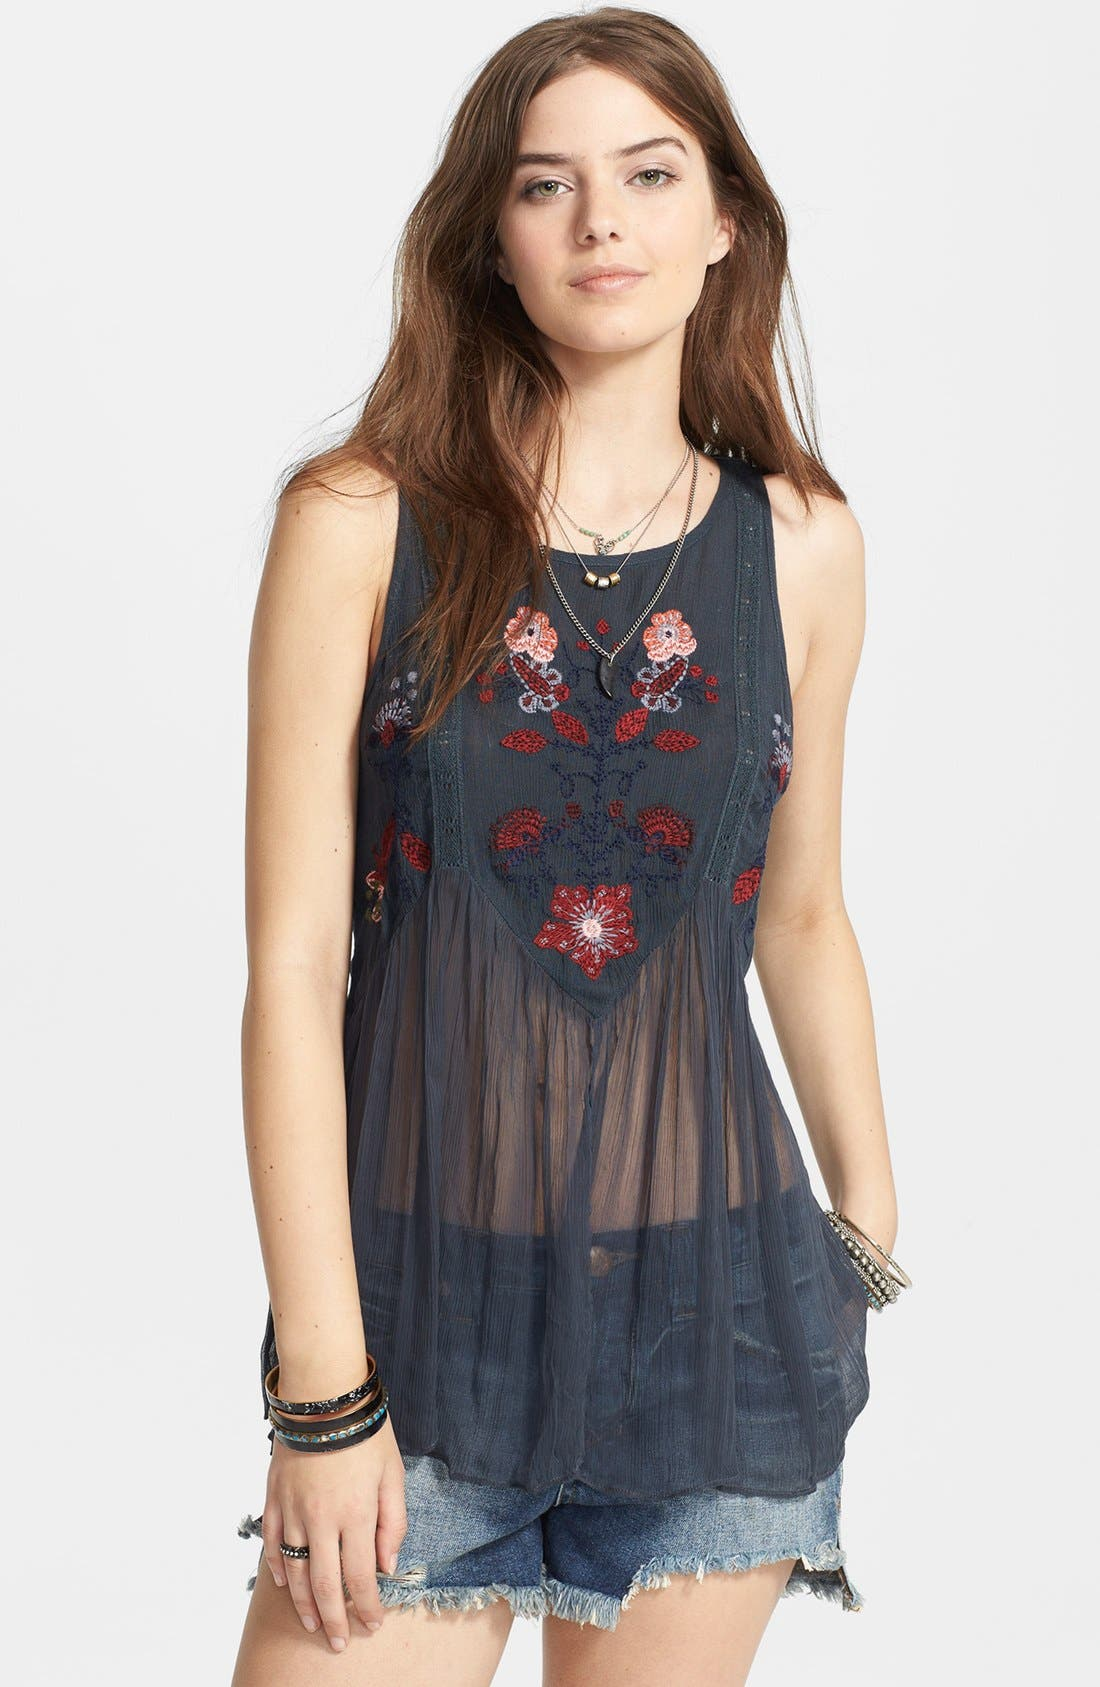 Alternate Image 1 Selected - Free People 'In the Free World' Embroidered Top